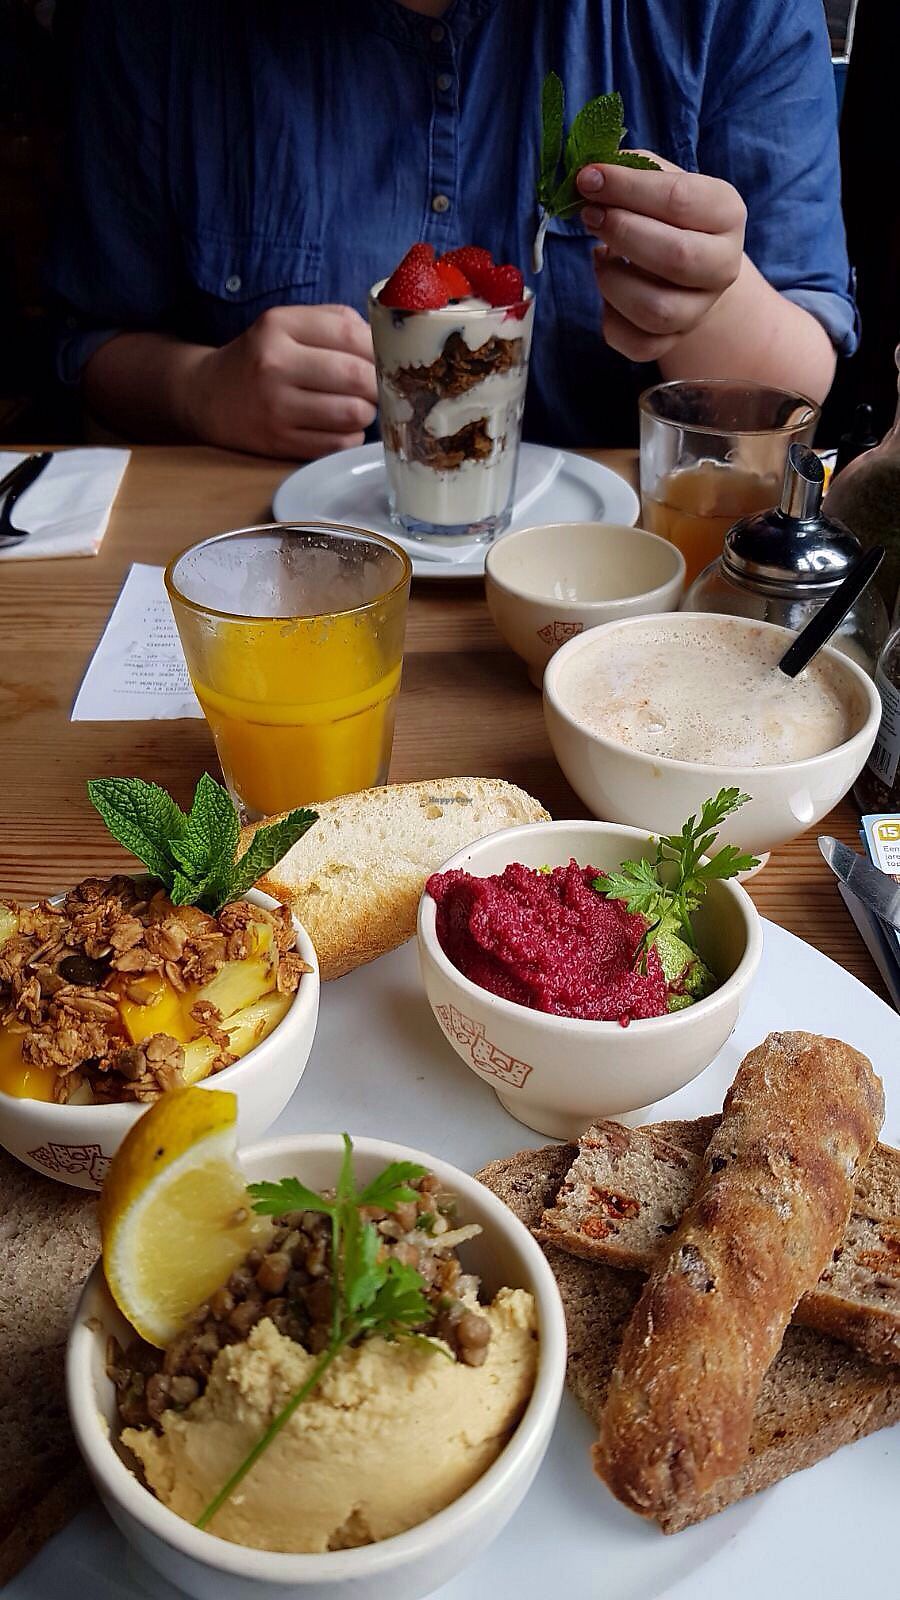 "Photo of CLOSED: Le Pain Quotidien - Philip Stockstraat  by <a href=""/members/profile/Cakerino"">Cakerino</a> <br/>Two dishes from the special summer menu <br/> August 26, 2017  - <a href='/contact/abuse/image/28514/297411'>Report</a>"